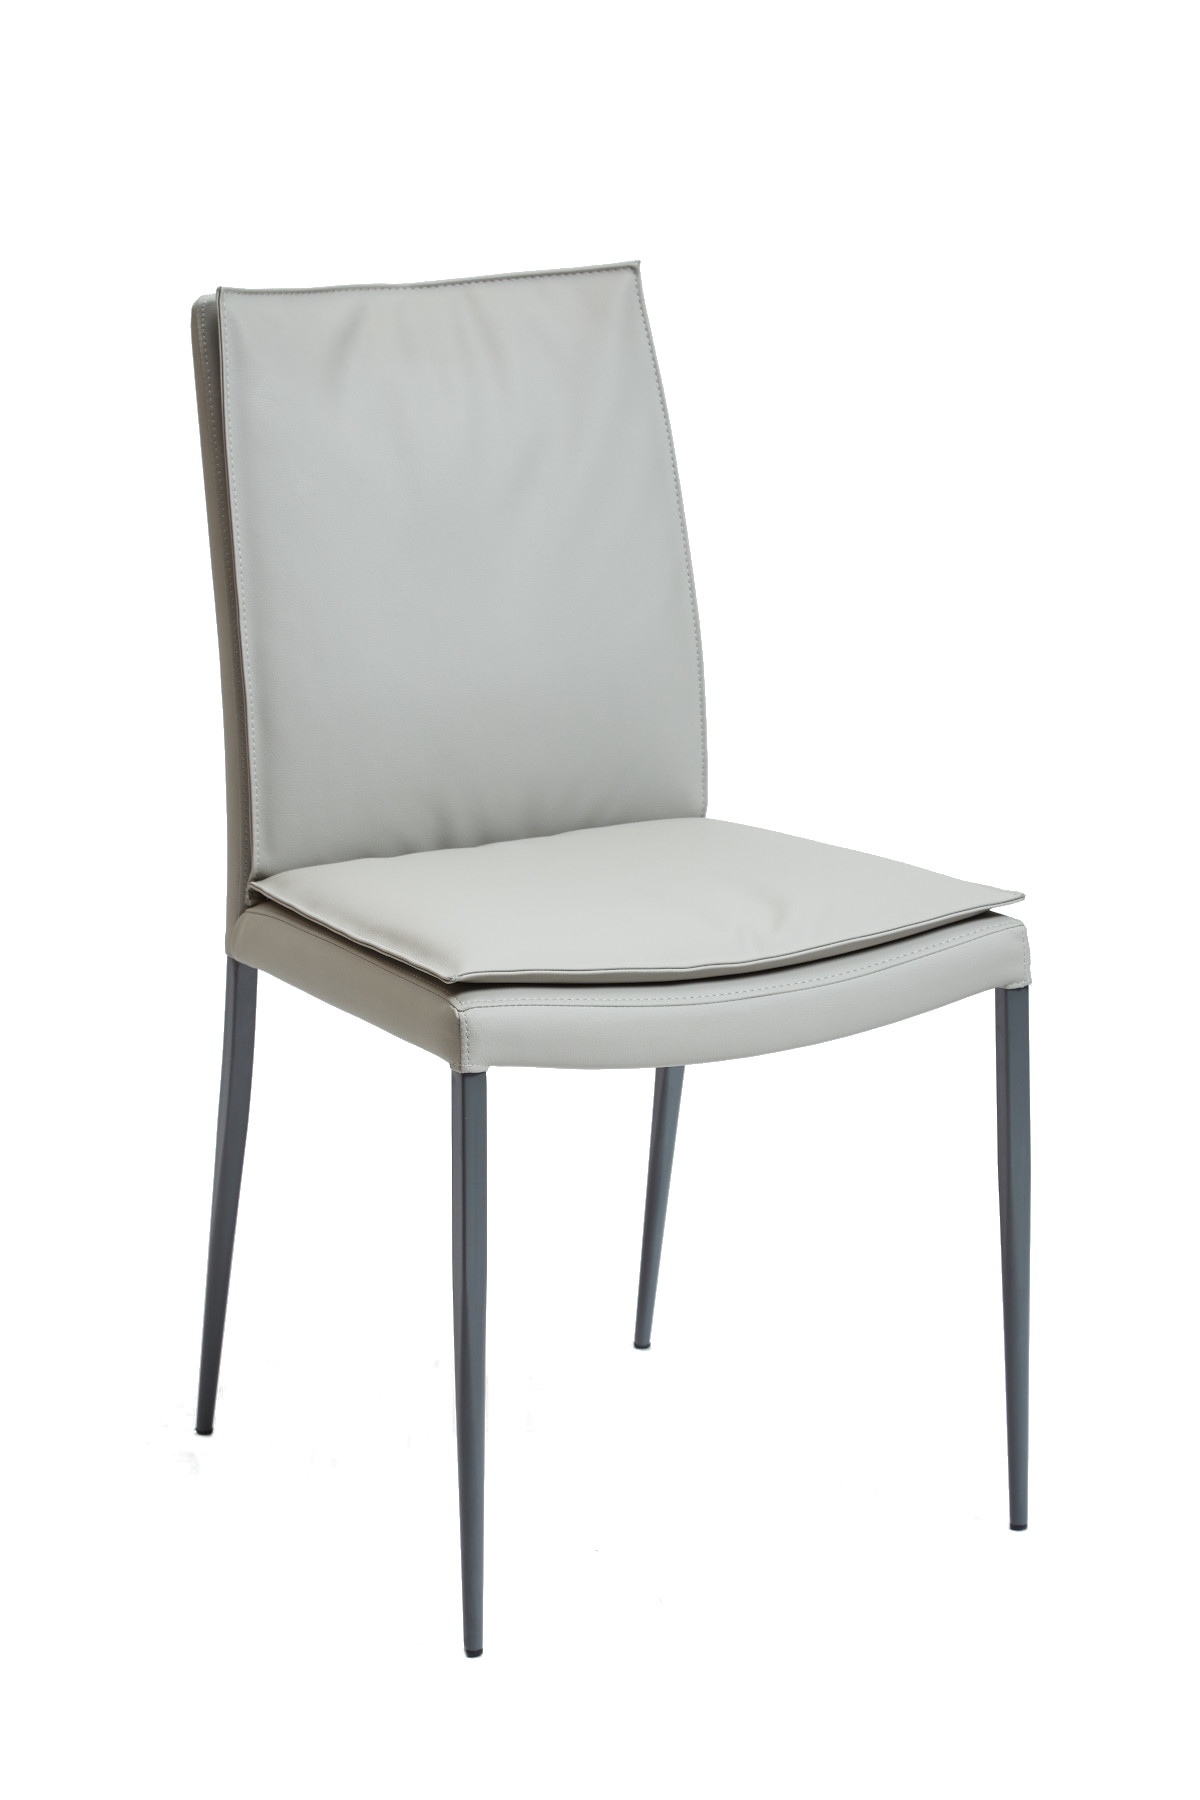 Maxsoft Dining Chair - Grey